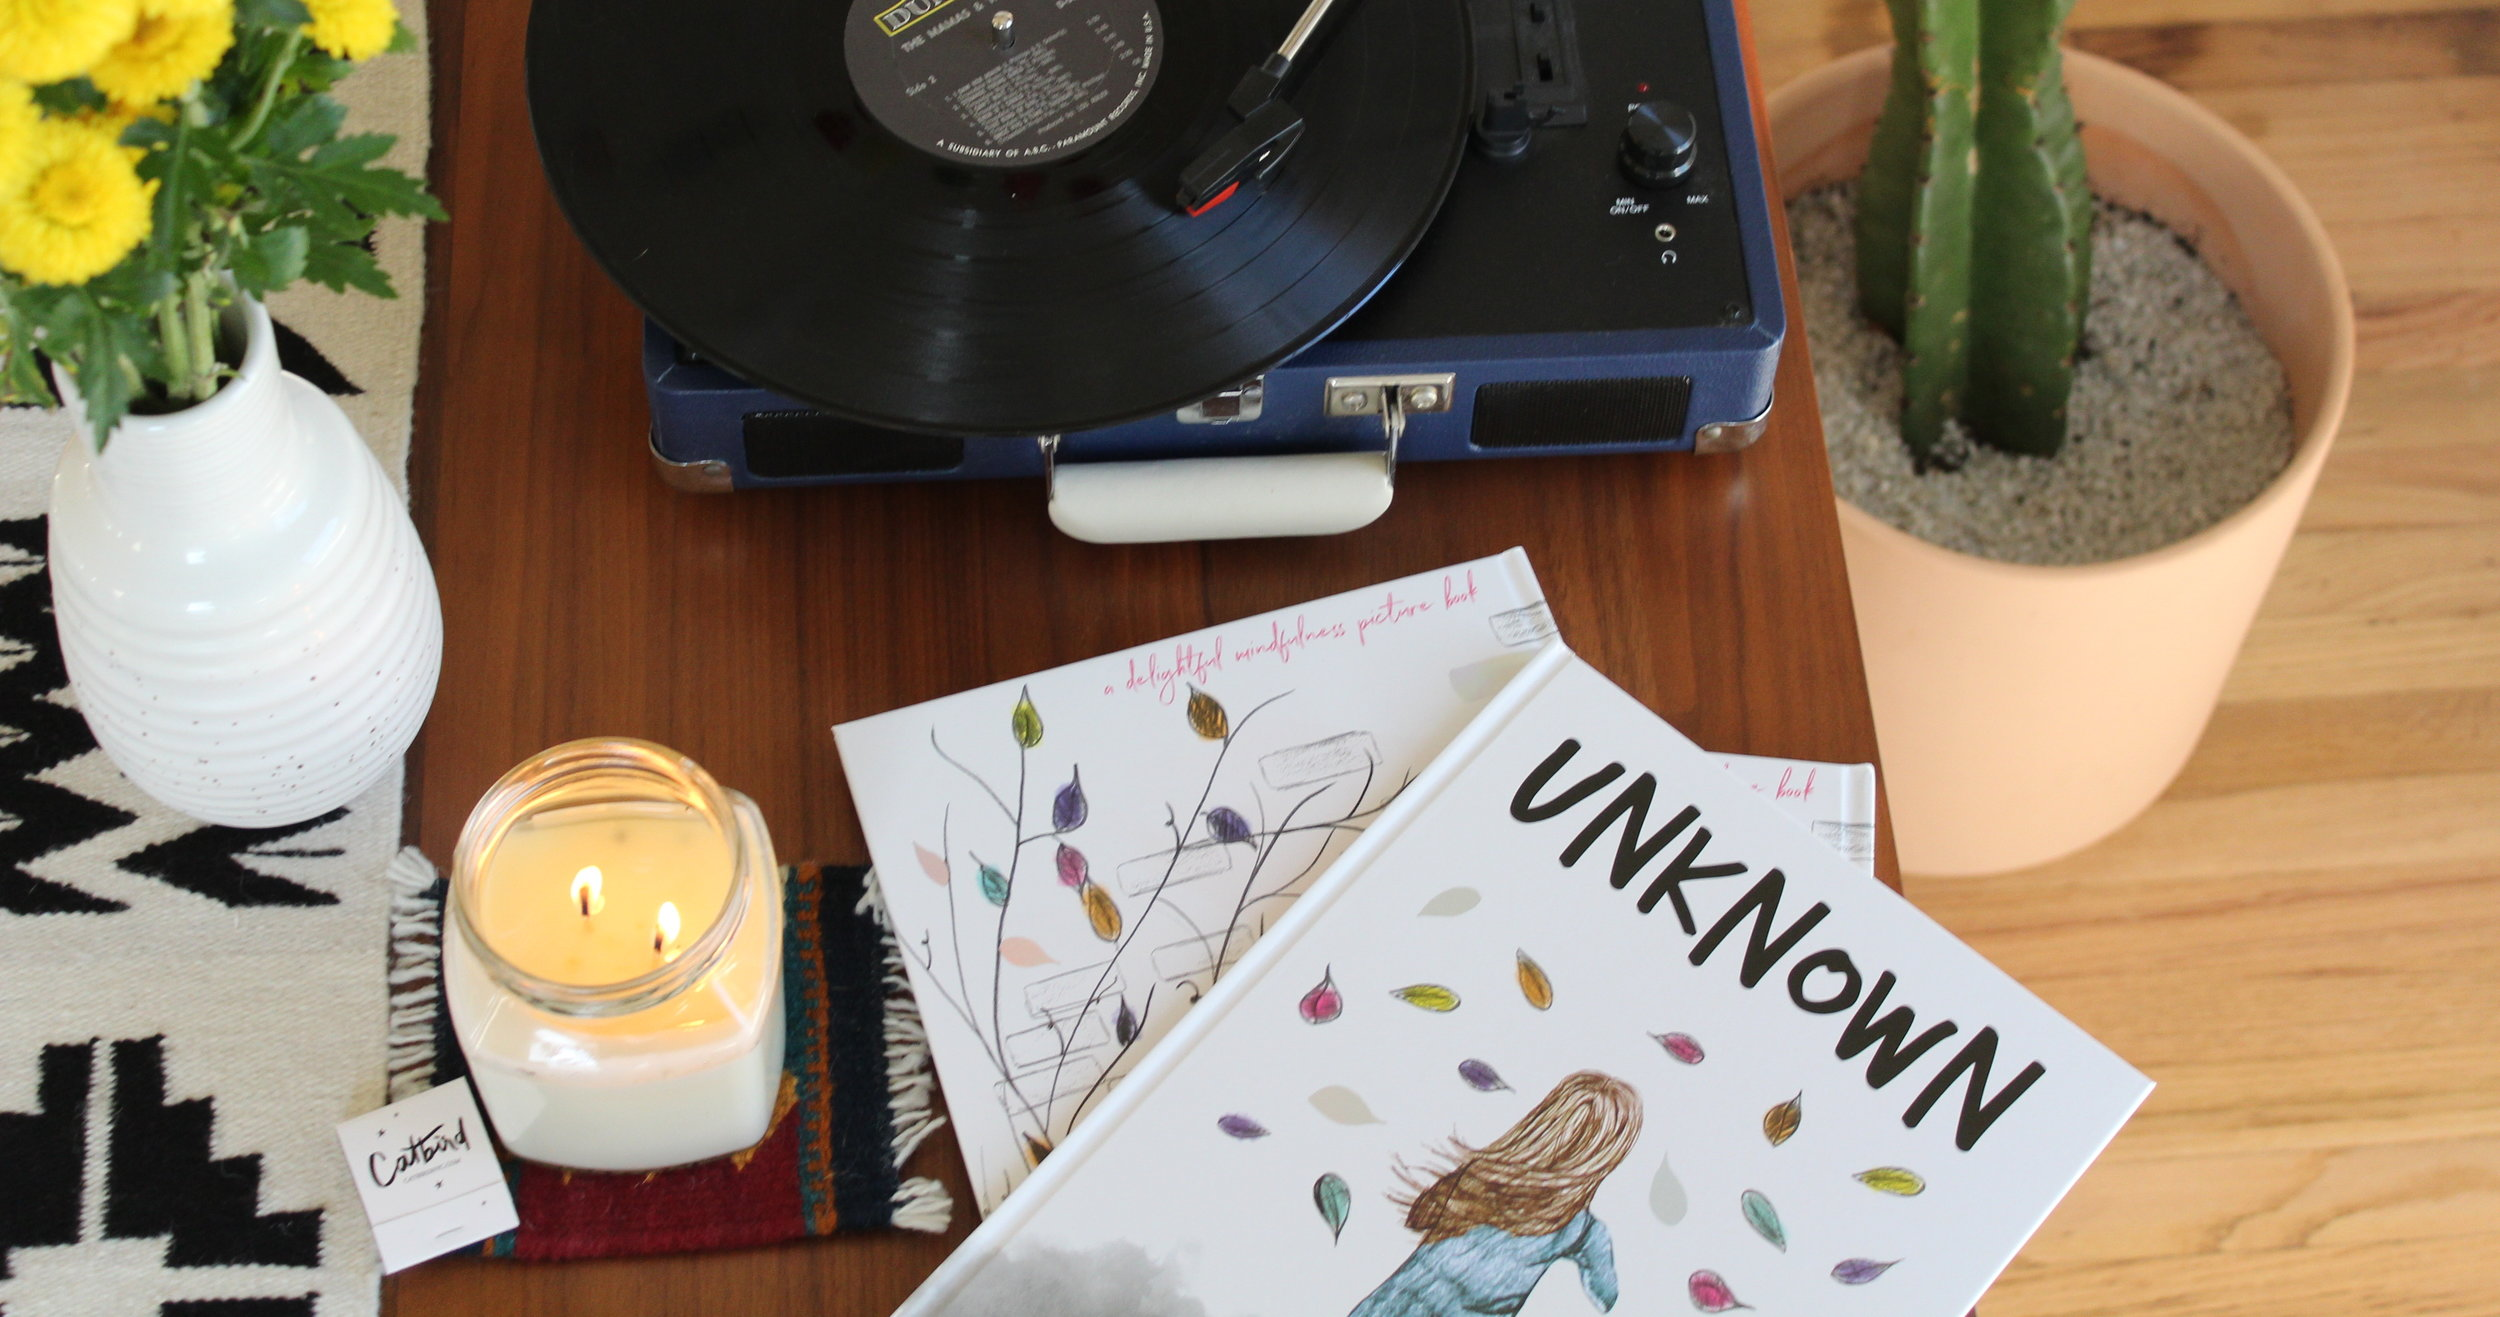 record-player-catbird-jewelry-candle-matches-cactus-flowers-unknown-a-book-about-mindfulness-stephen-wawryk-luna-maha-meditation-amazon-books